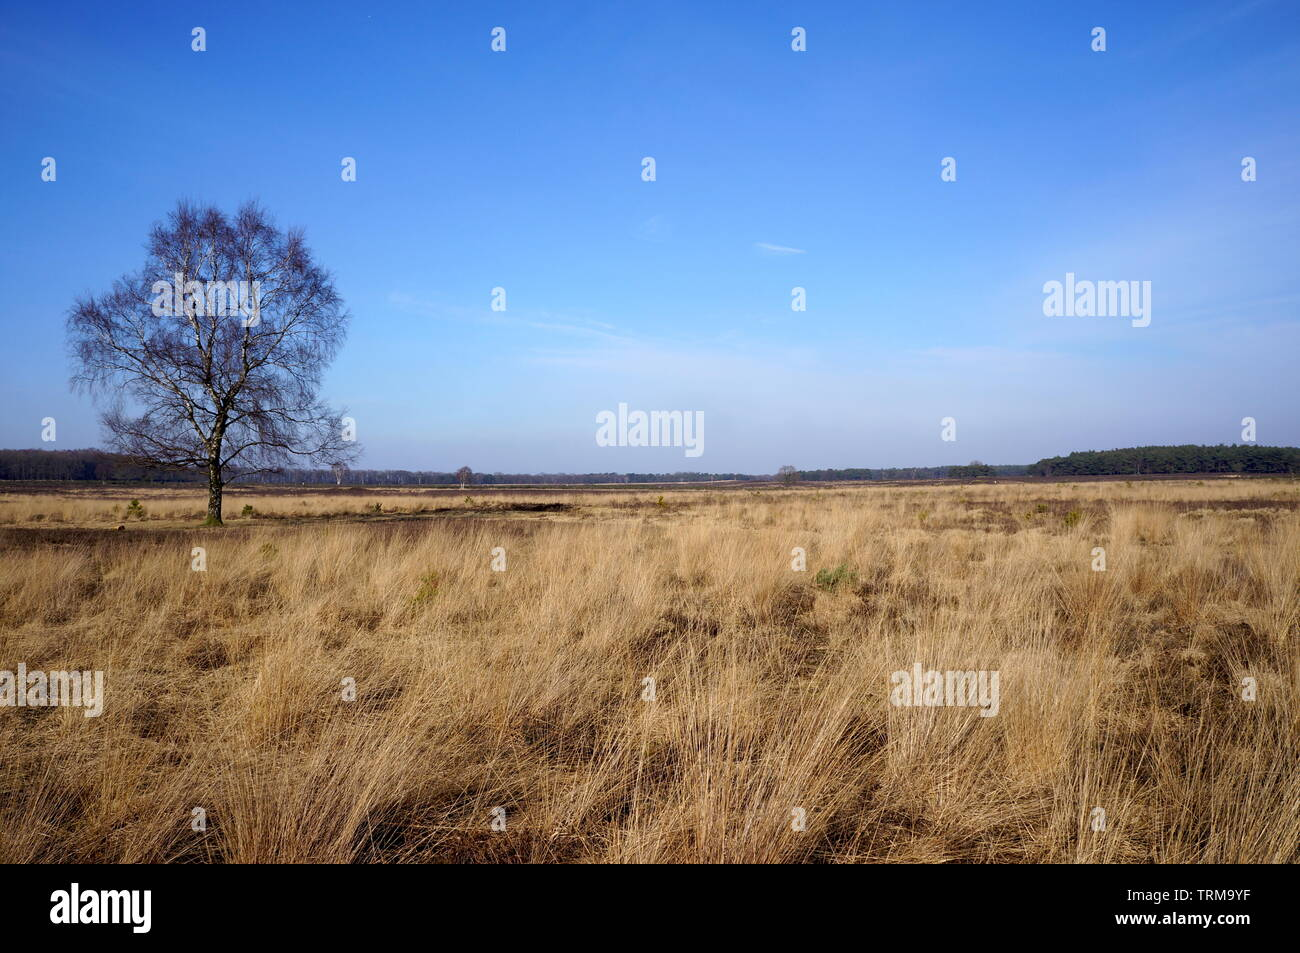 Nature reserve area called Het Gooi near Hilversum in the Netherlands. - Stock Image